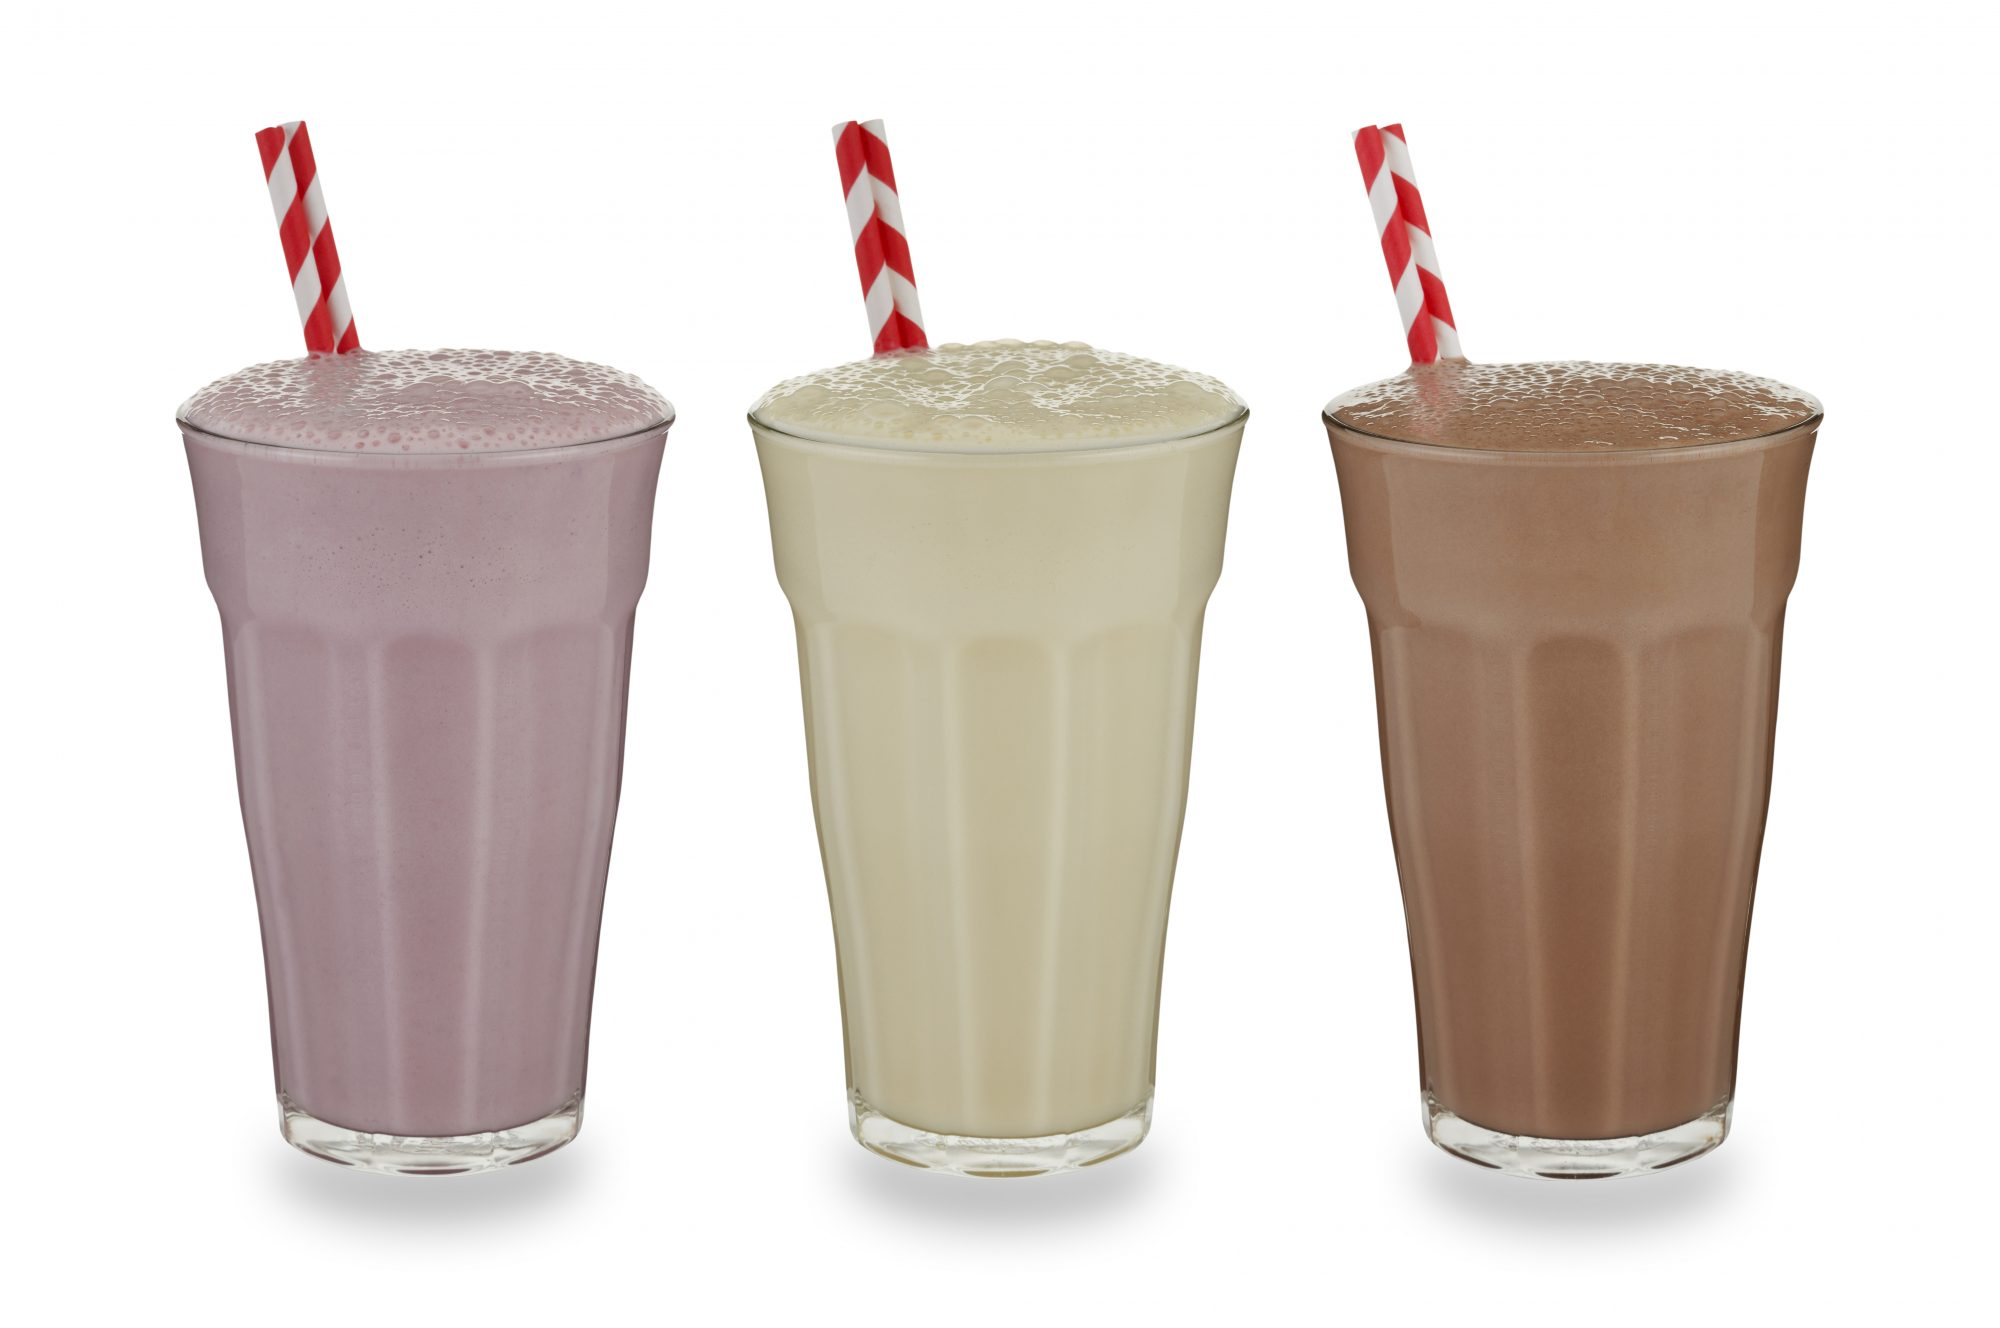 Malt vs. Milkshake: What's the Difference?